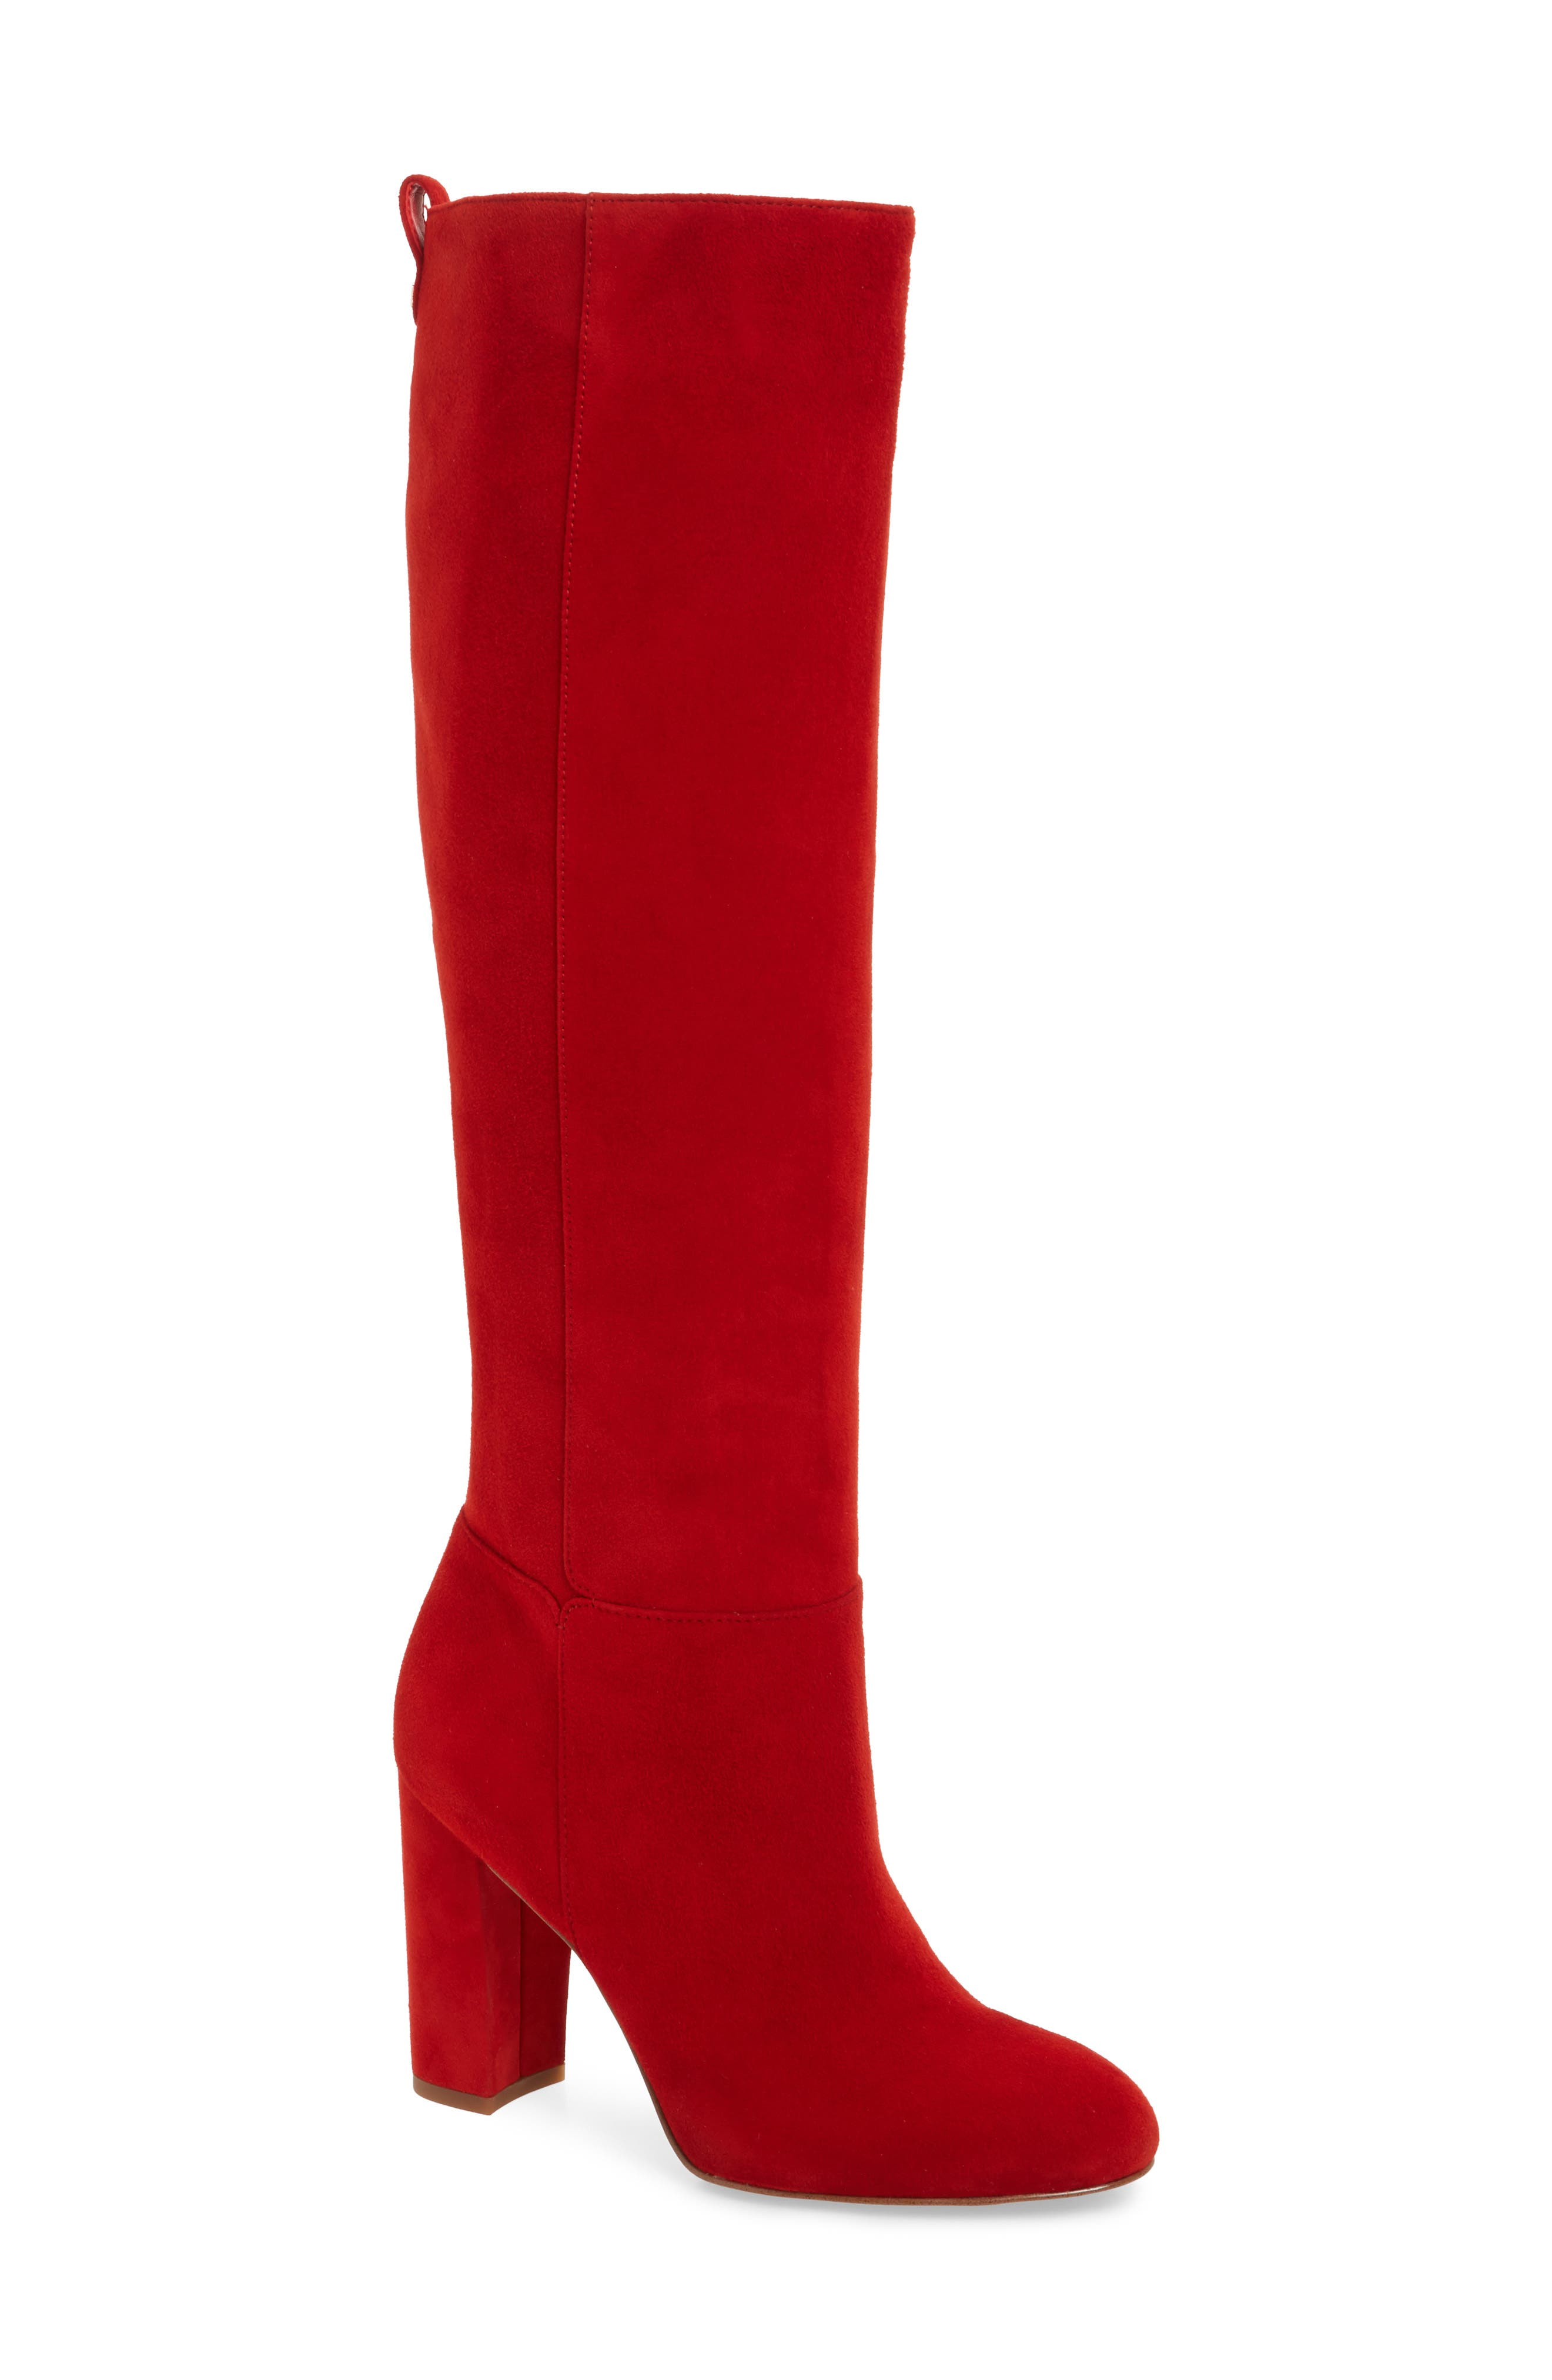 Caprice Knee-High Boot,                             Main thumbnail 1, color,                             CANDY RED SUEDE